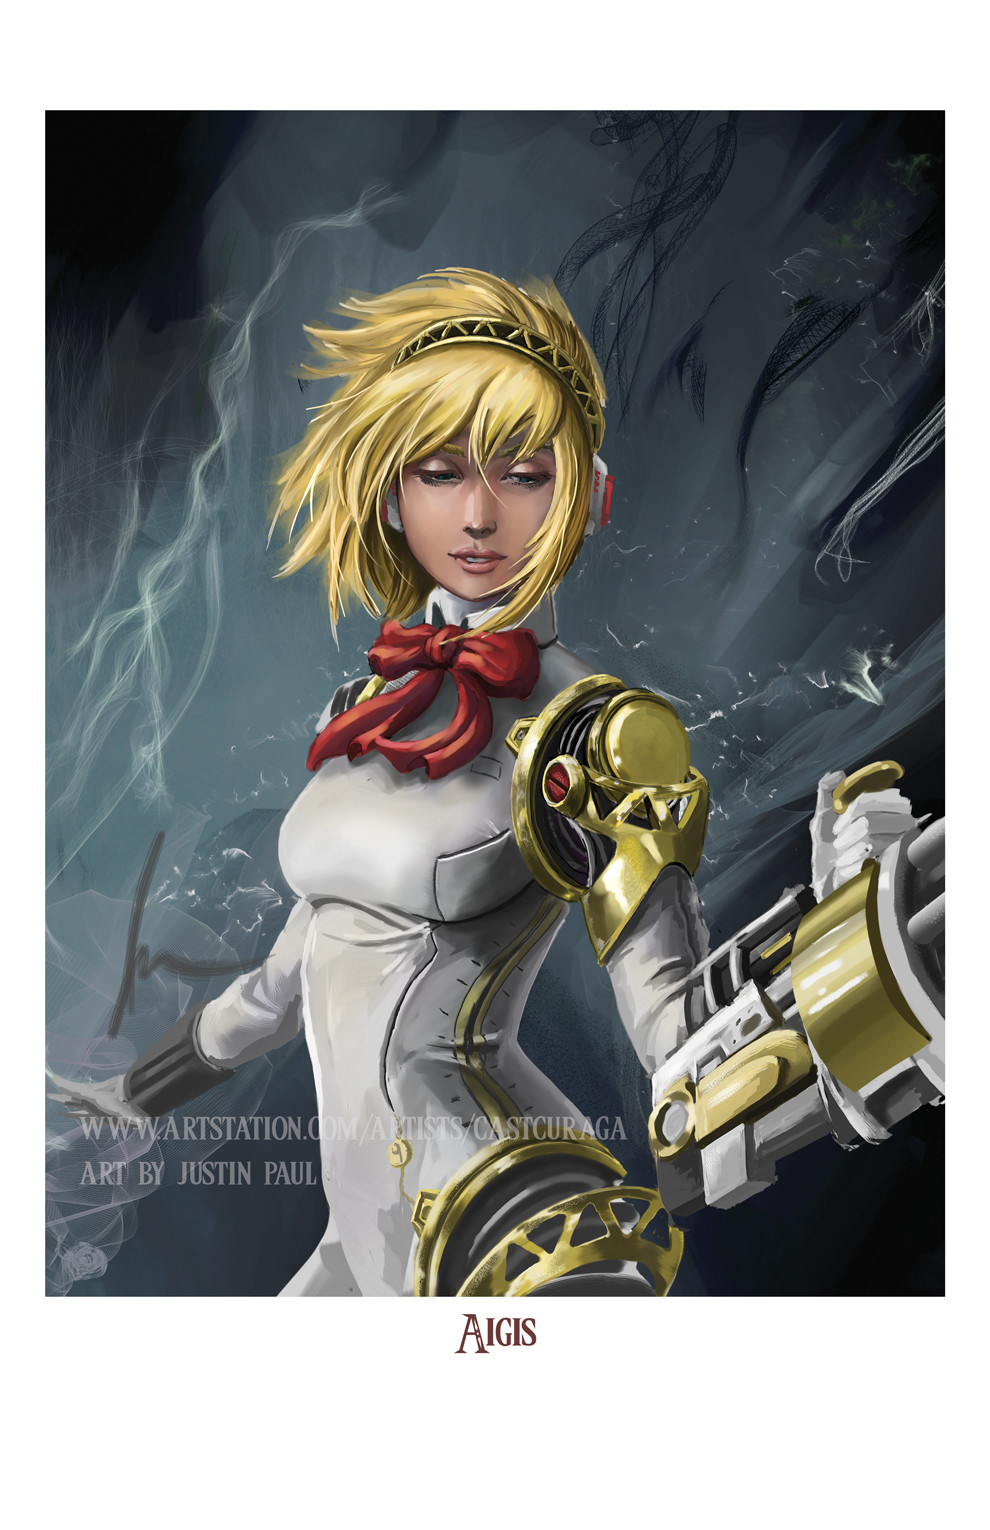 Aigis - Persona 3 